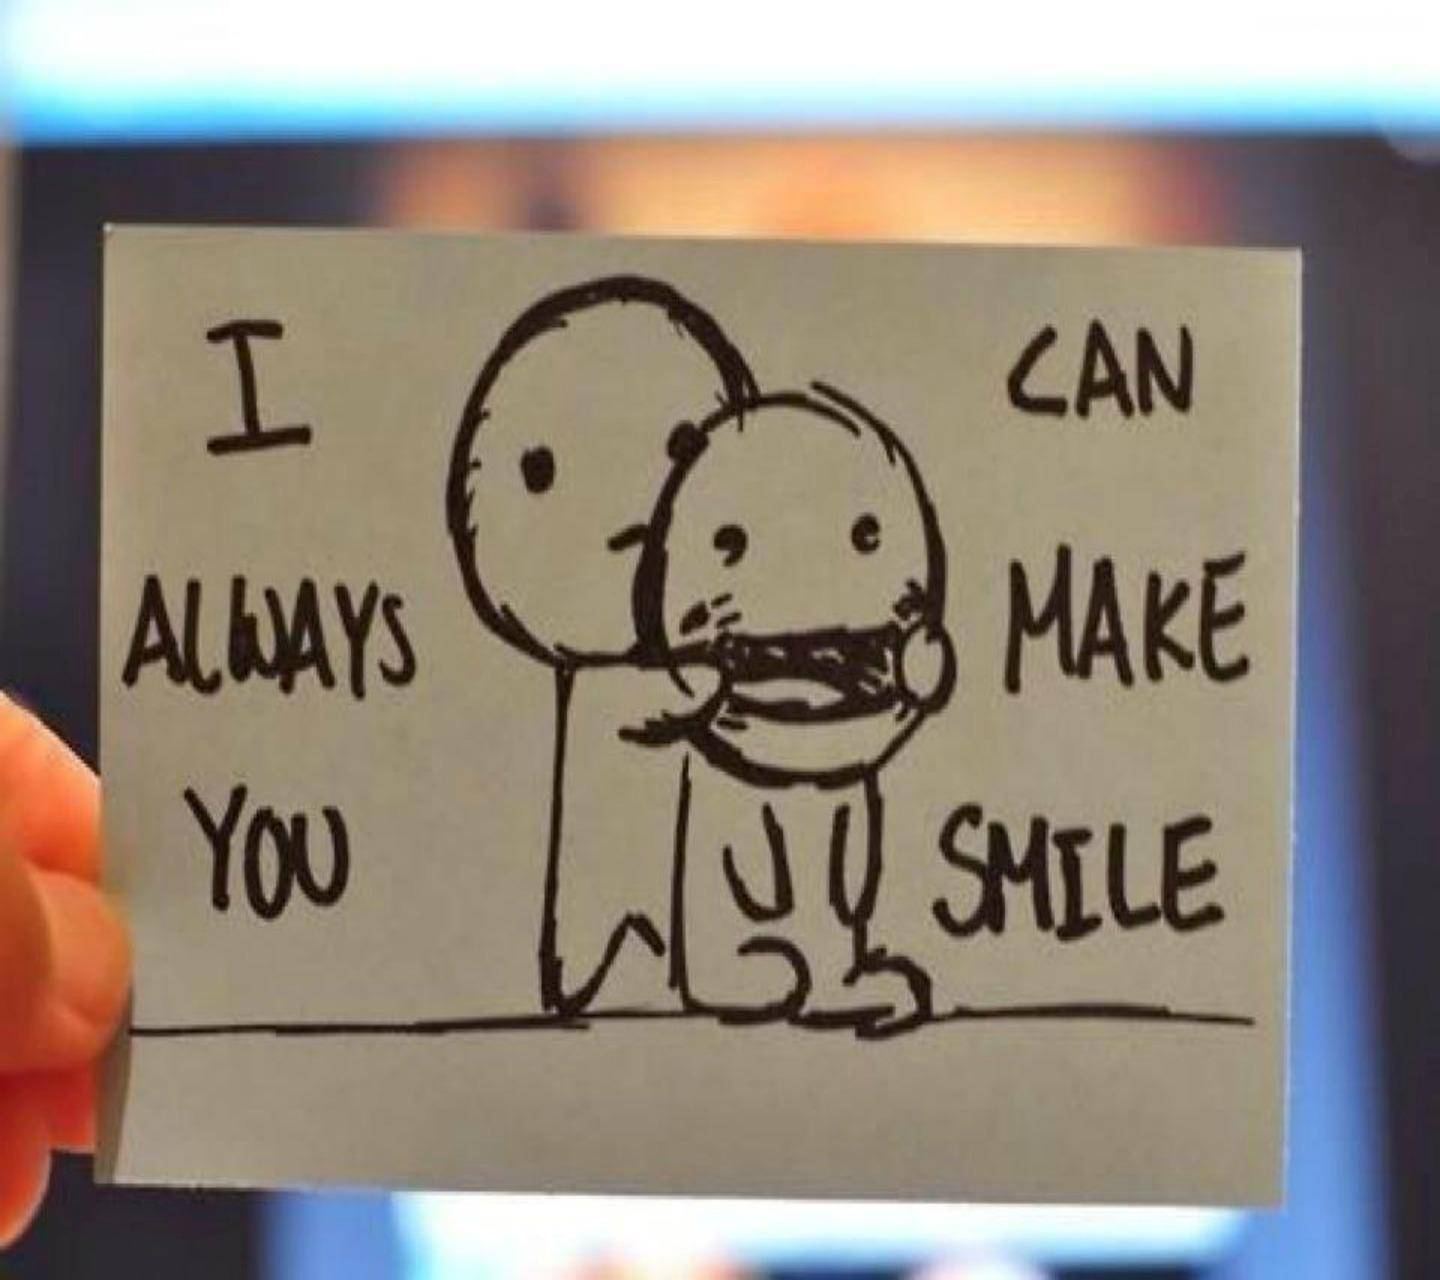 You can smile